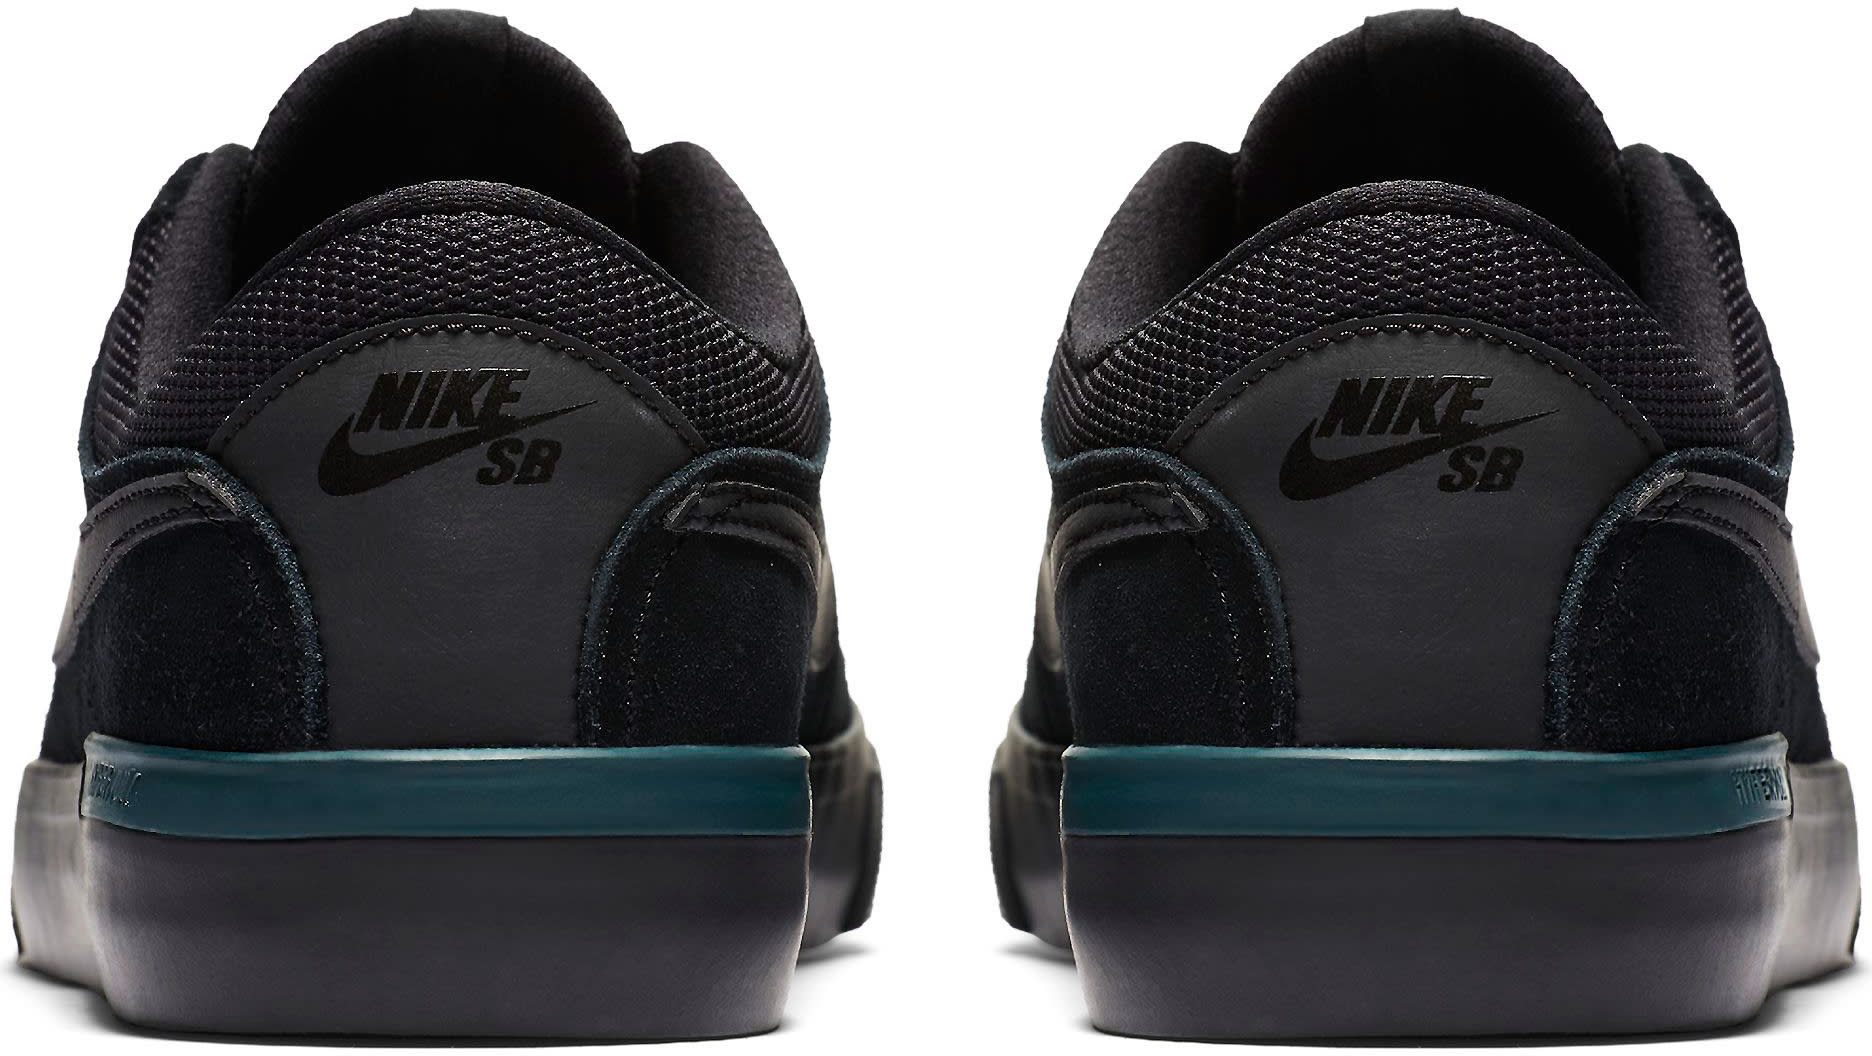 Nike SB Koston Hypervulc Skate Shoes - thumbnail 5